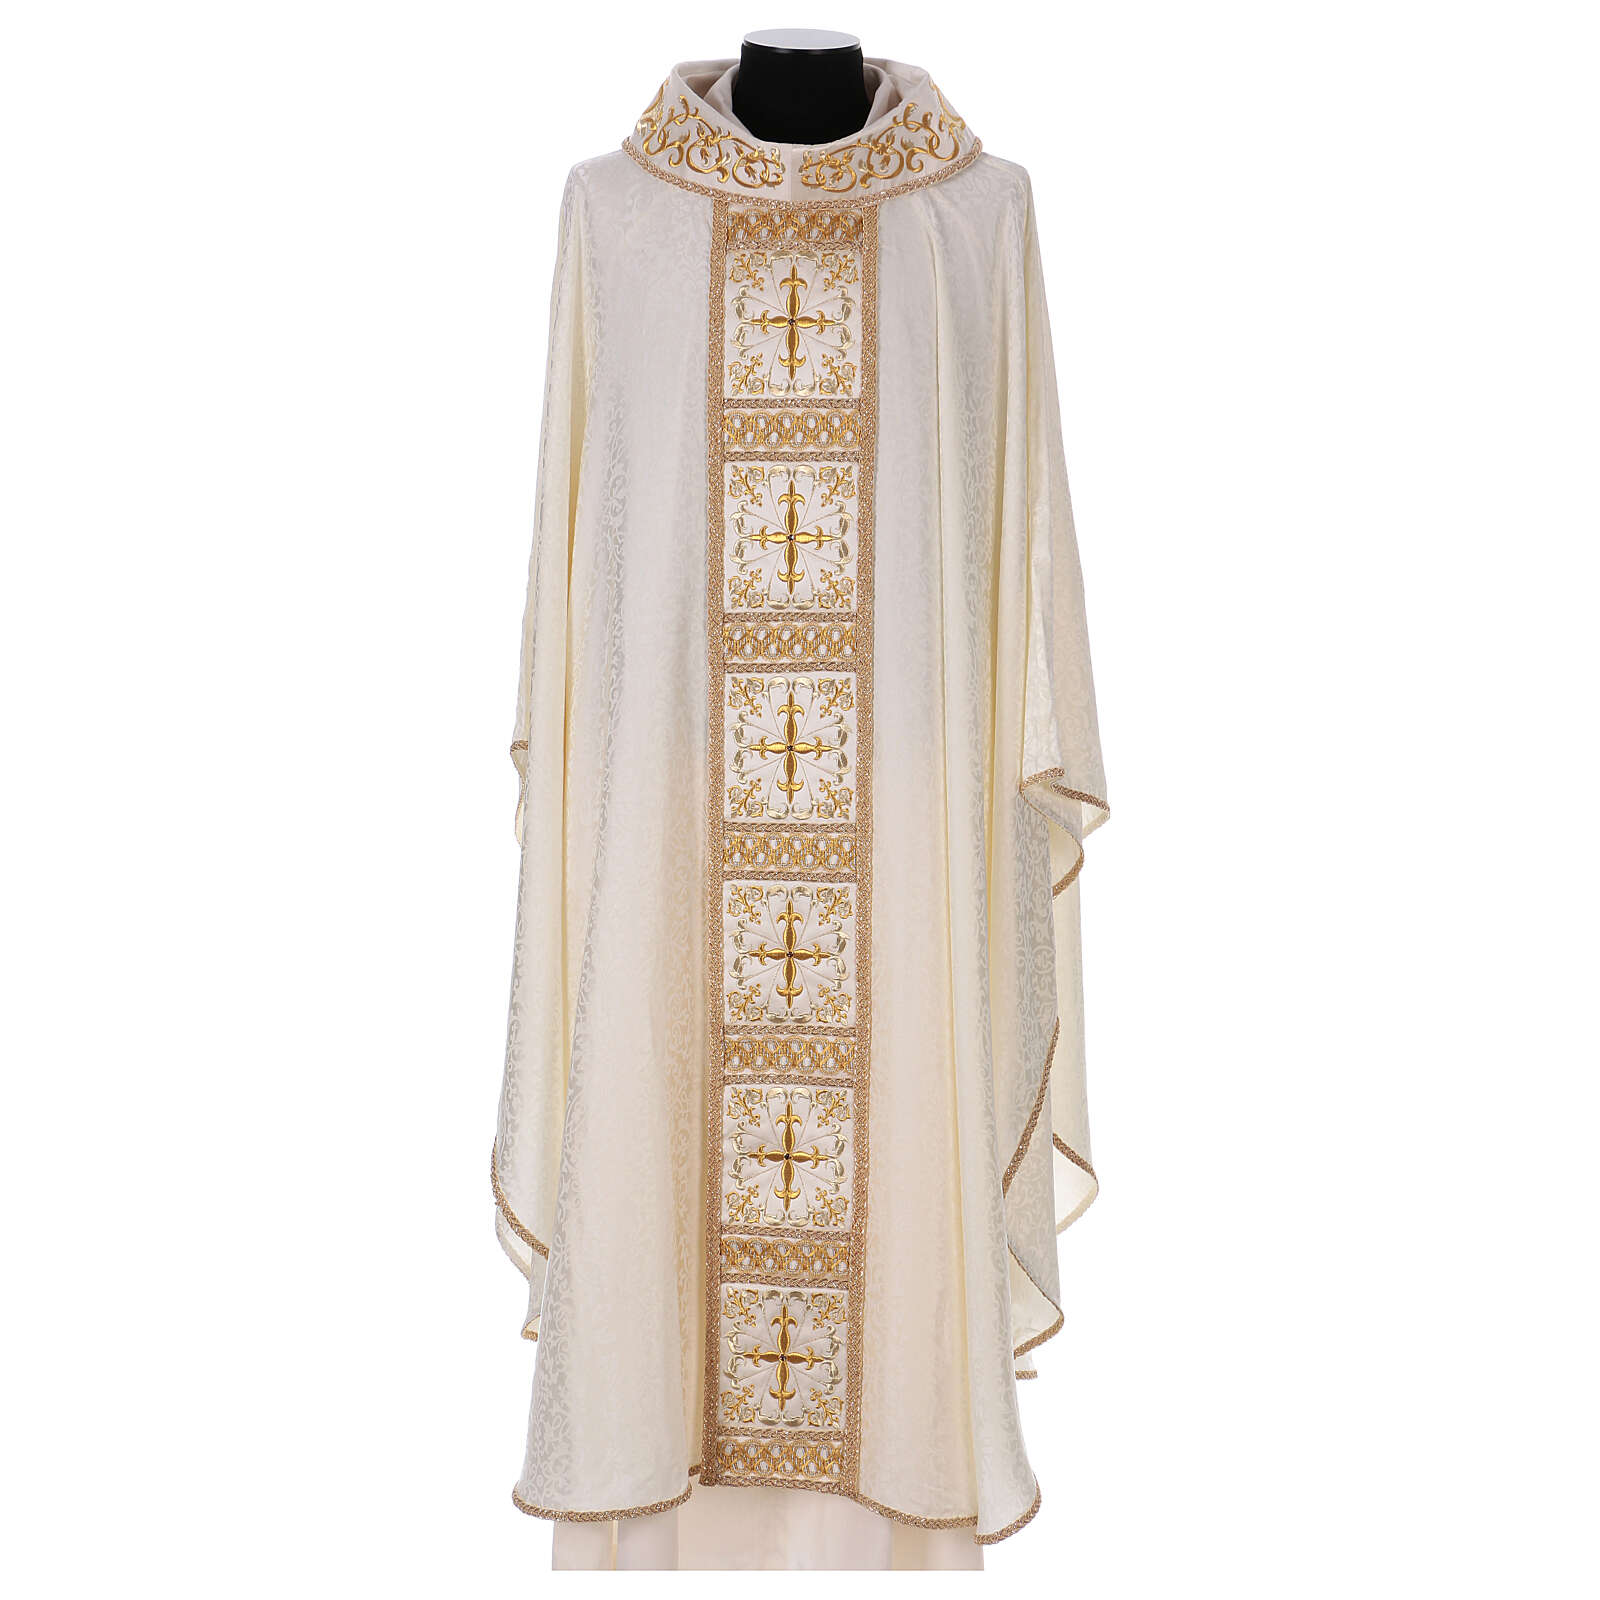 Chasuble with gold cross and stole, 64% acetate 36% viscose 4